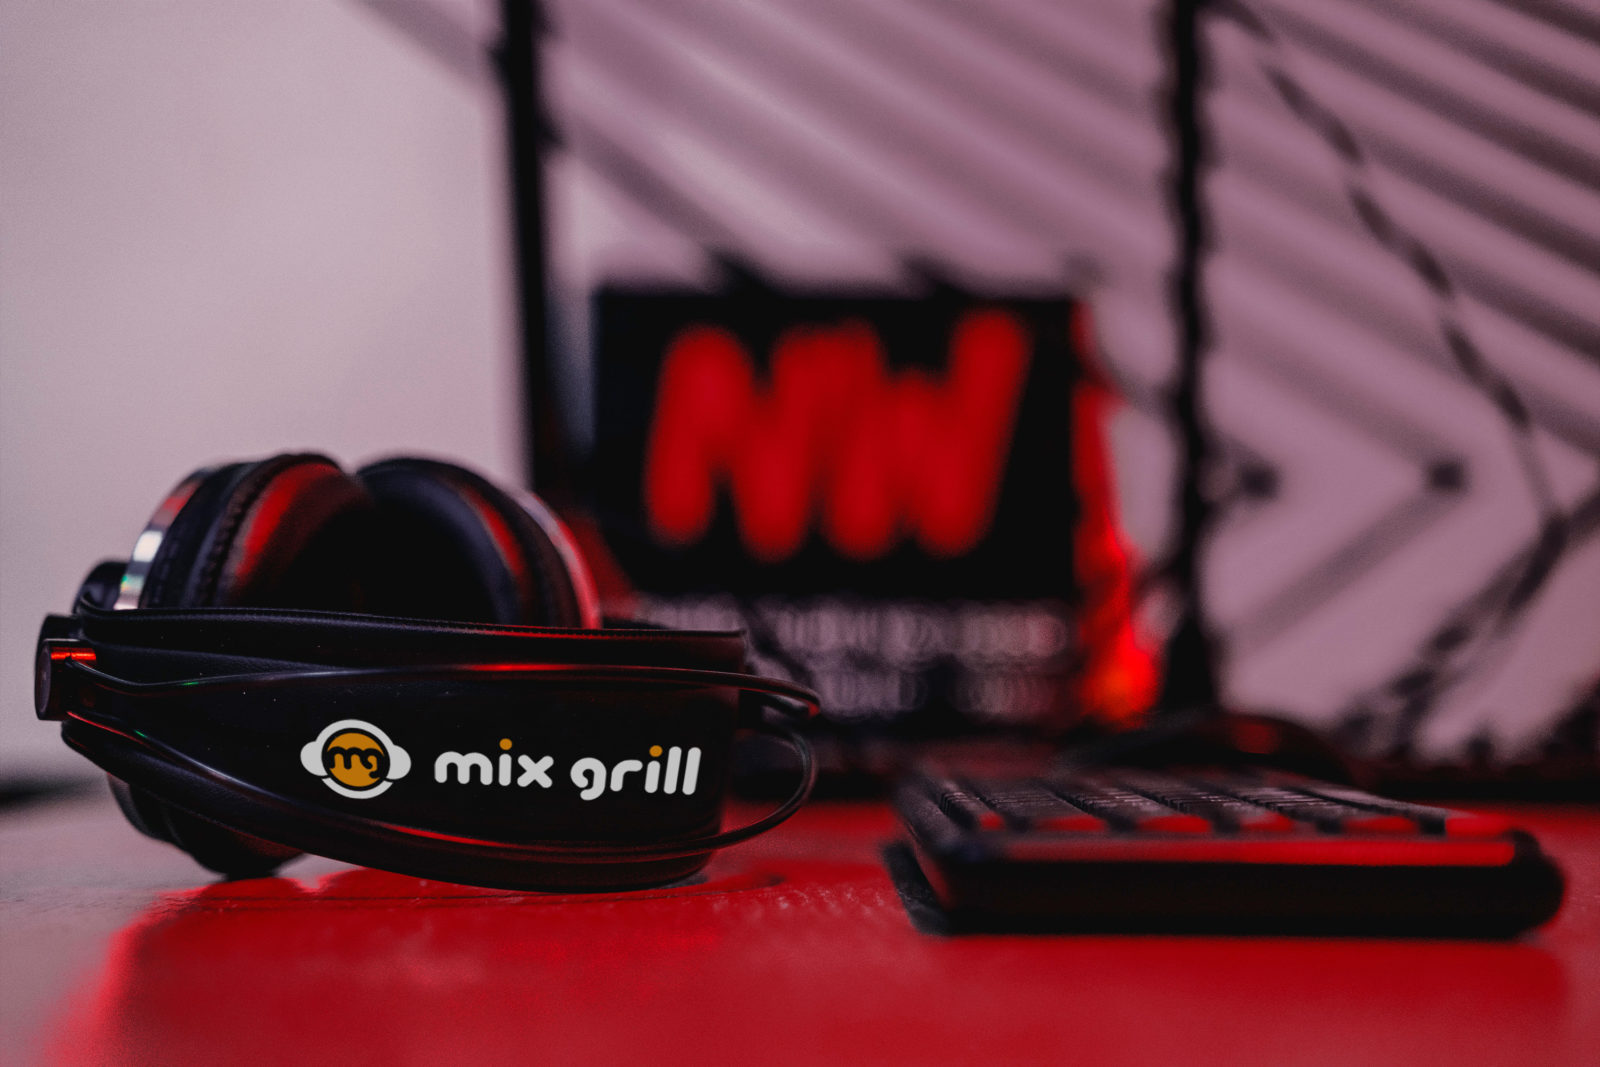 Radio Nowhere Mix Grill Together